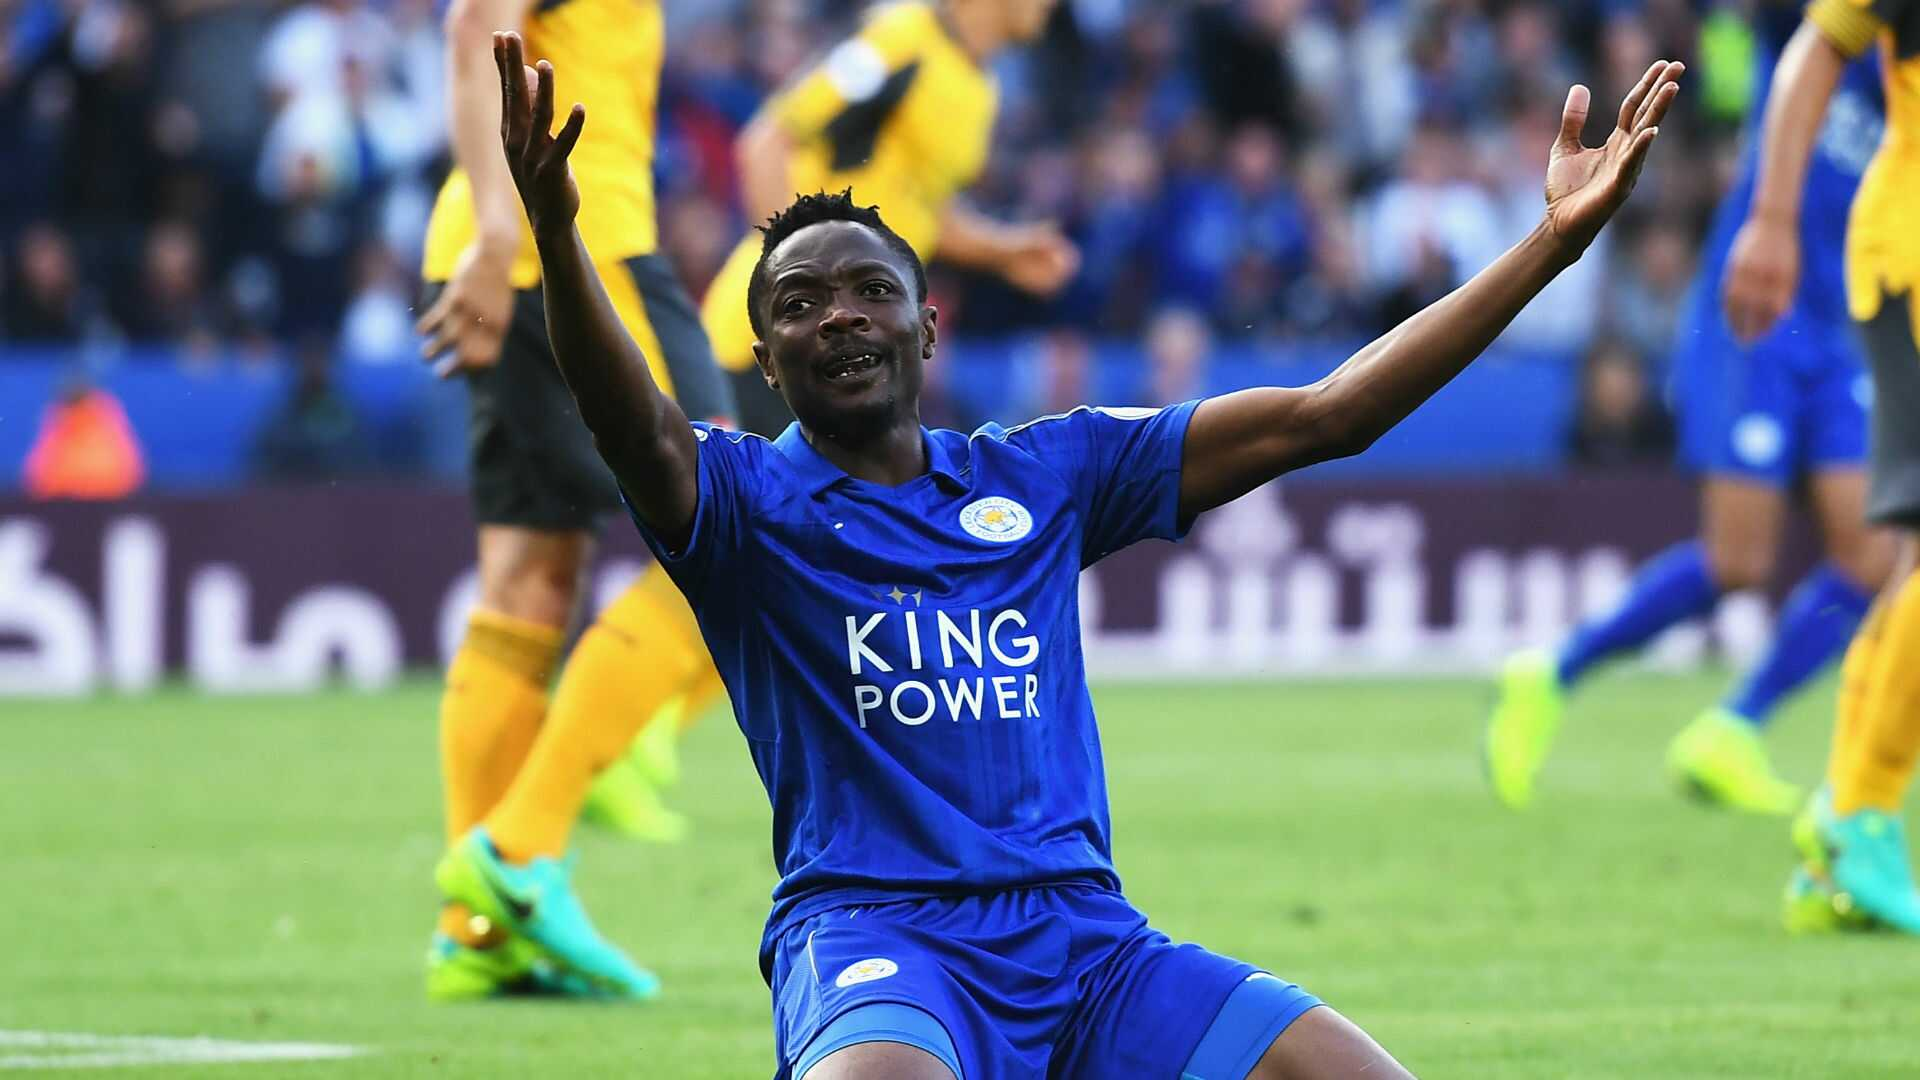 Leicester City's Claude Puel hints at possible January exit for Ahmed Musa